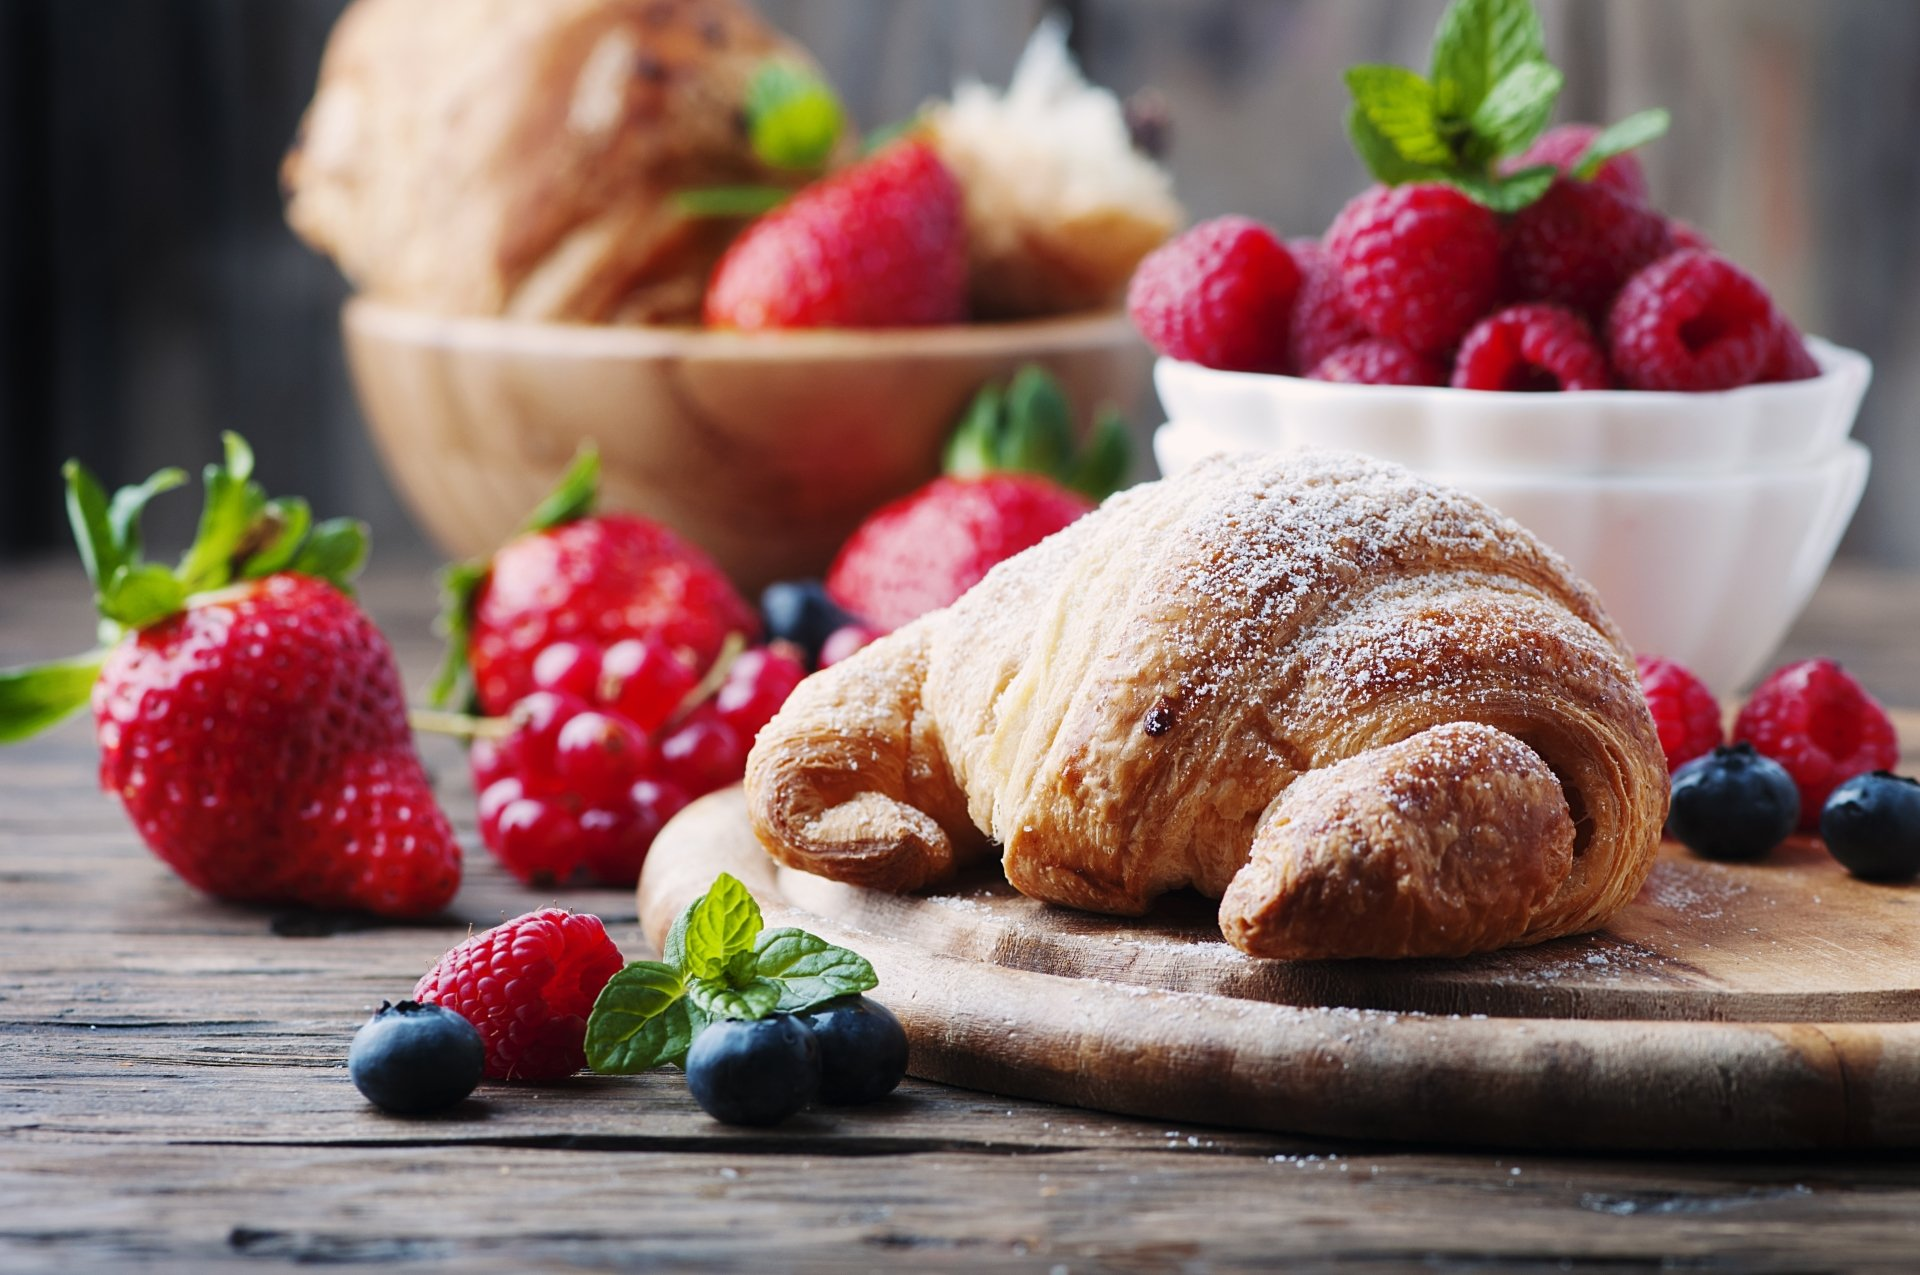 Food - Breakfast  Croissant Still Life Fruit Berry Strawberry Raspberry Blueberry Wallpaper